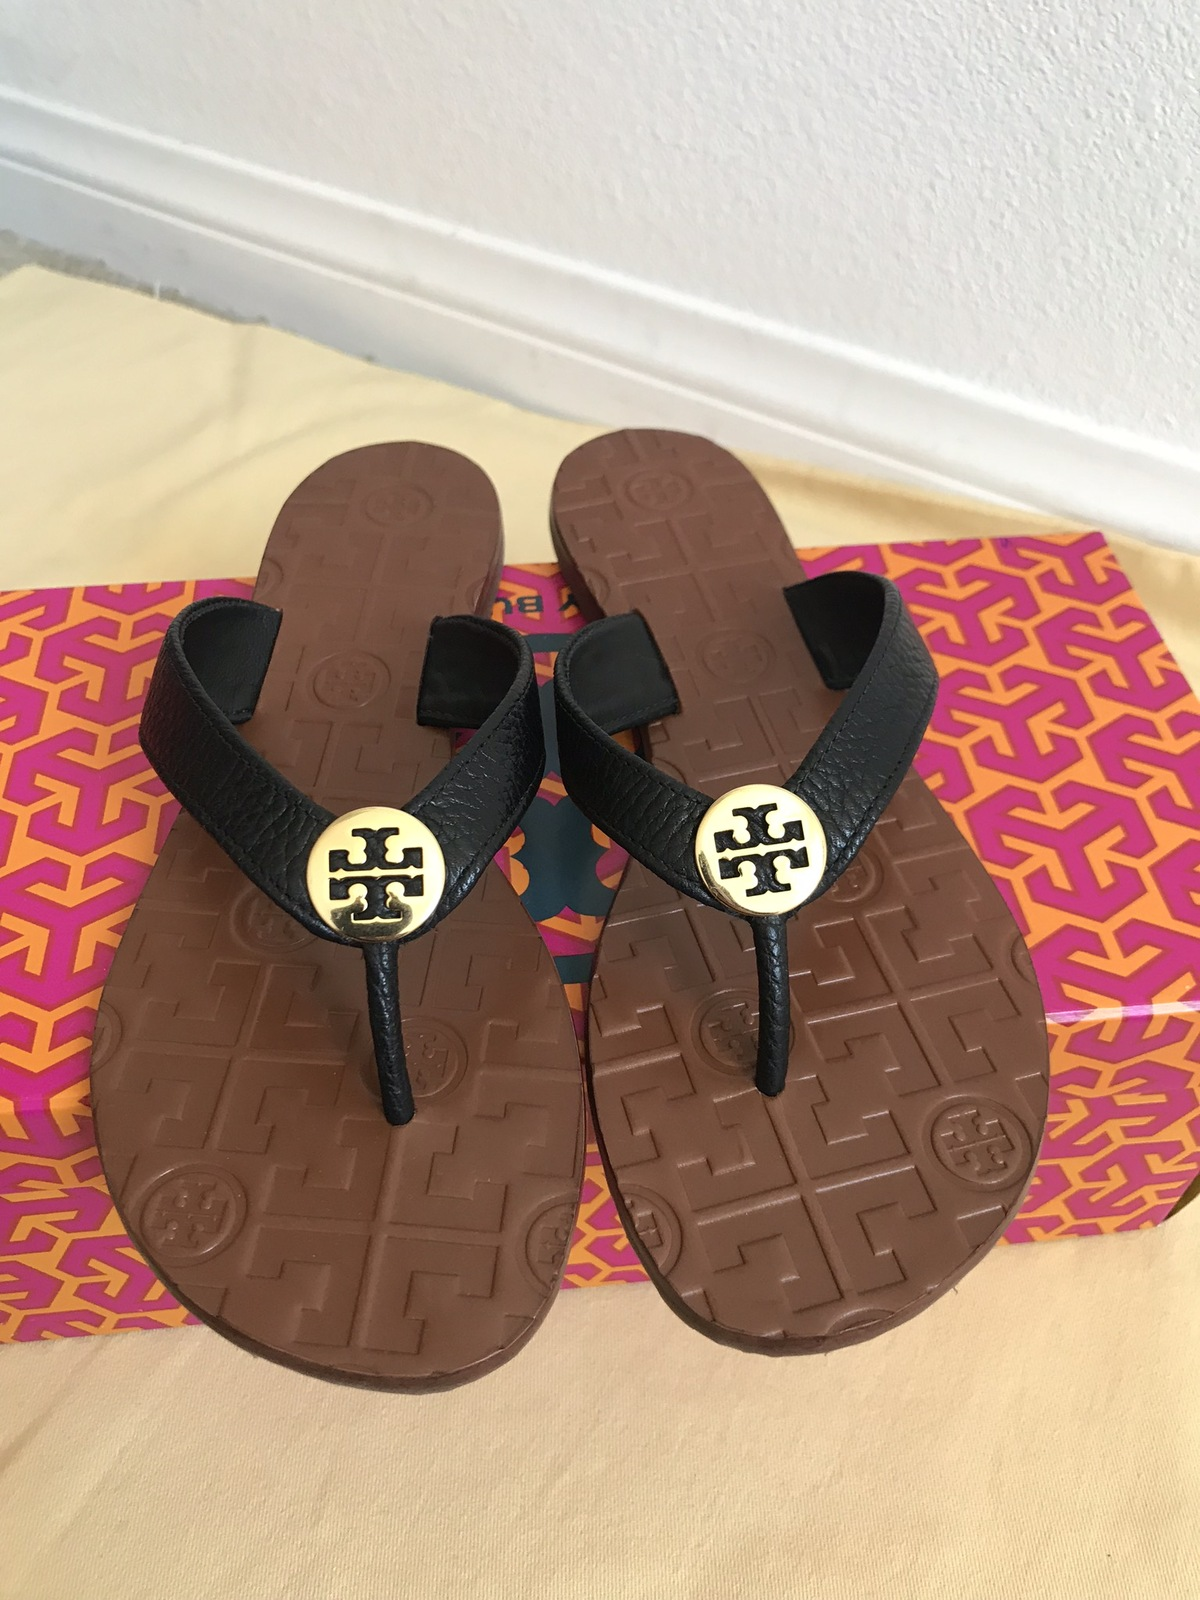 3b4fa2970 Size 7M Nib Tory Burch Black  Gold Thora and similar items. Img 1453